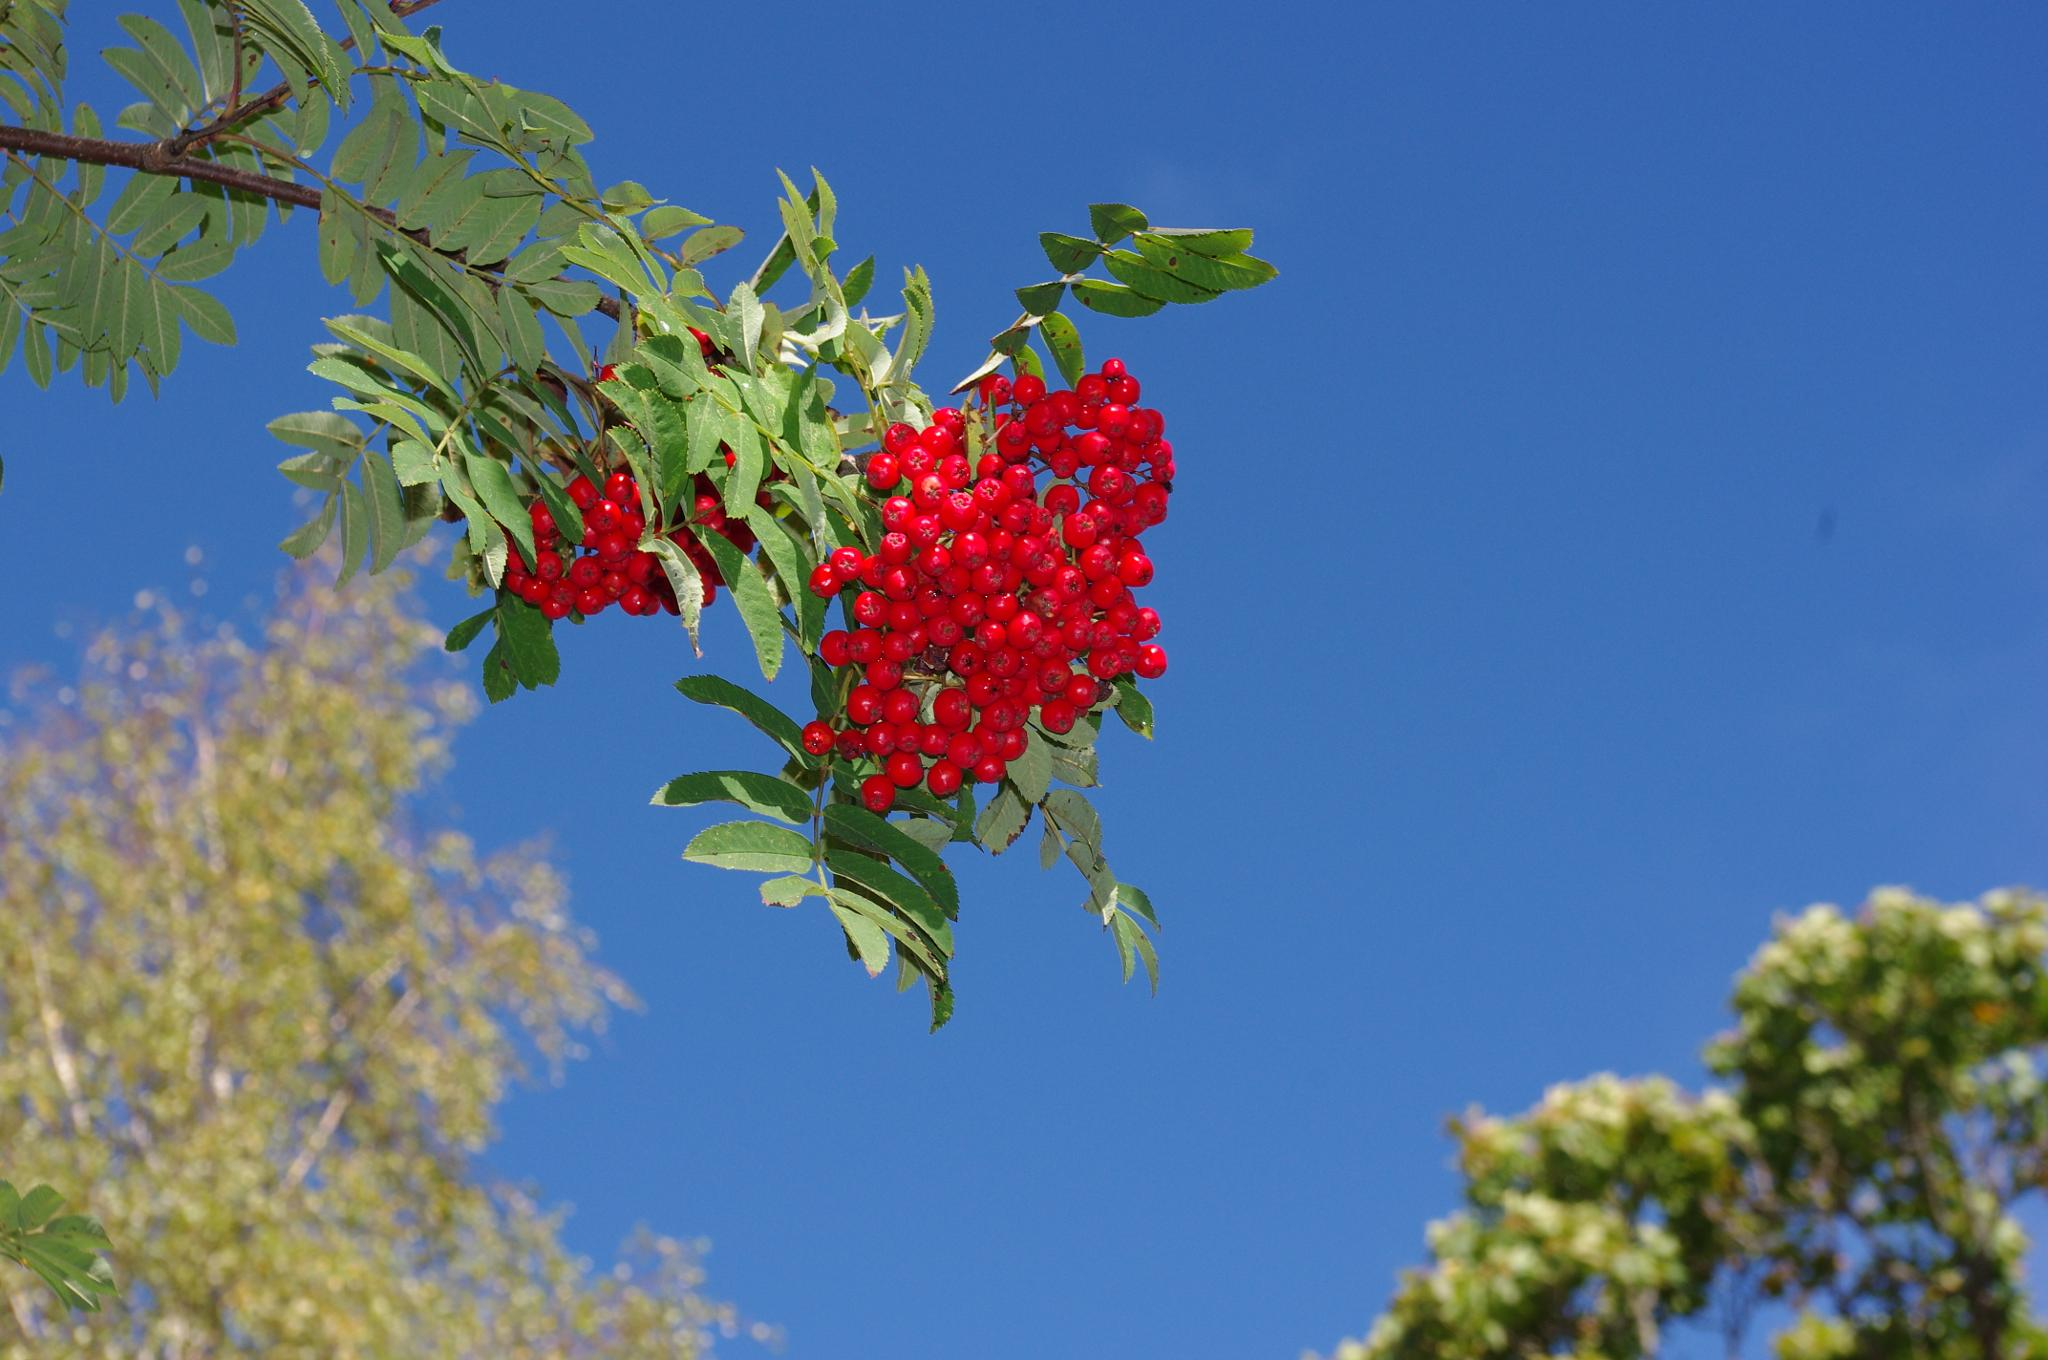 Rowanberries in the sun by eva.e.mabrouk